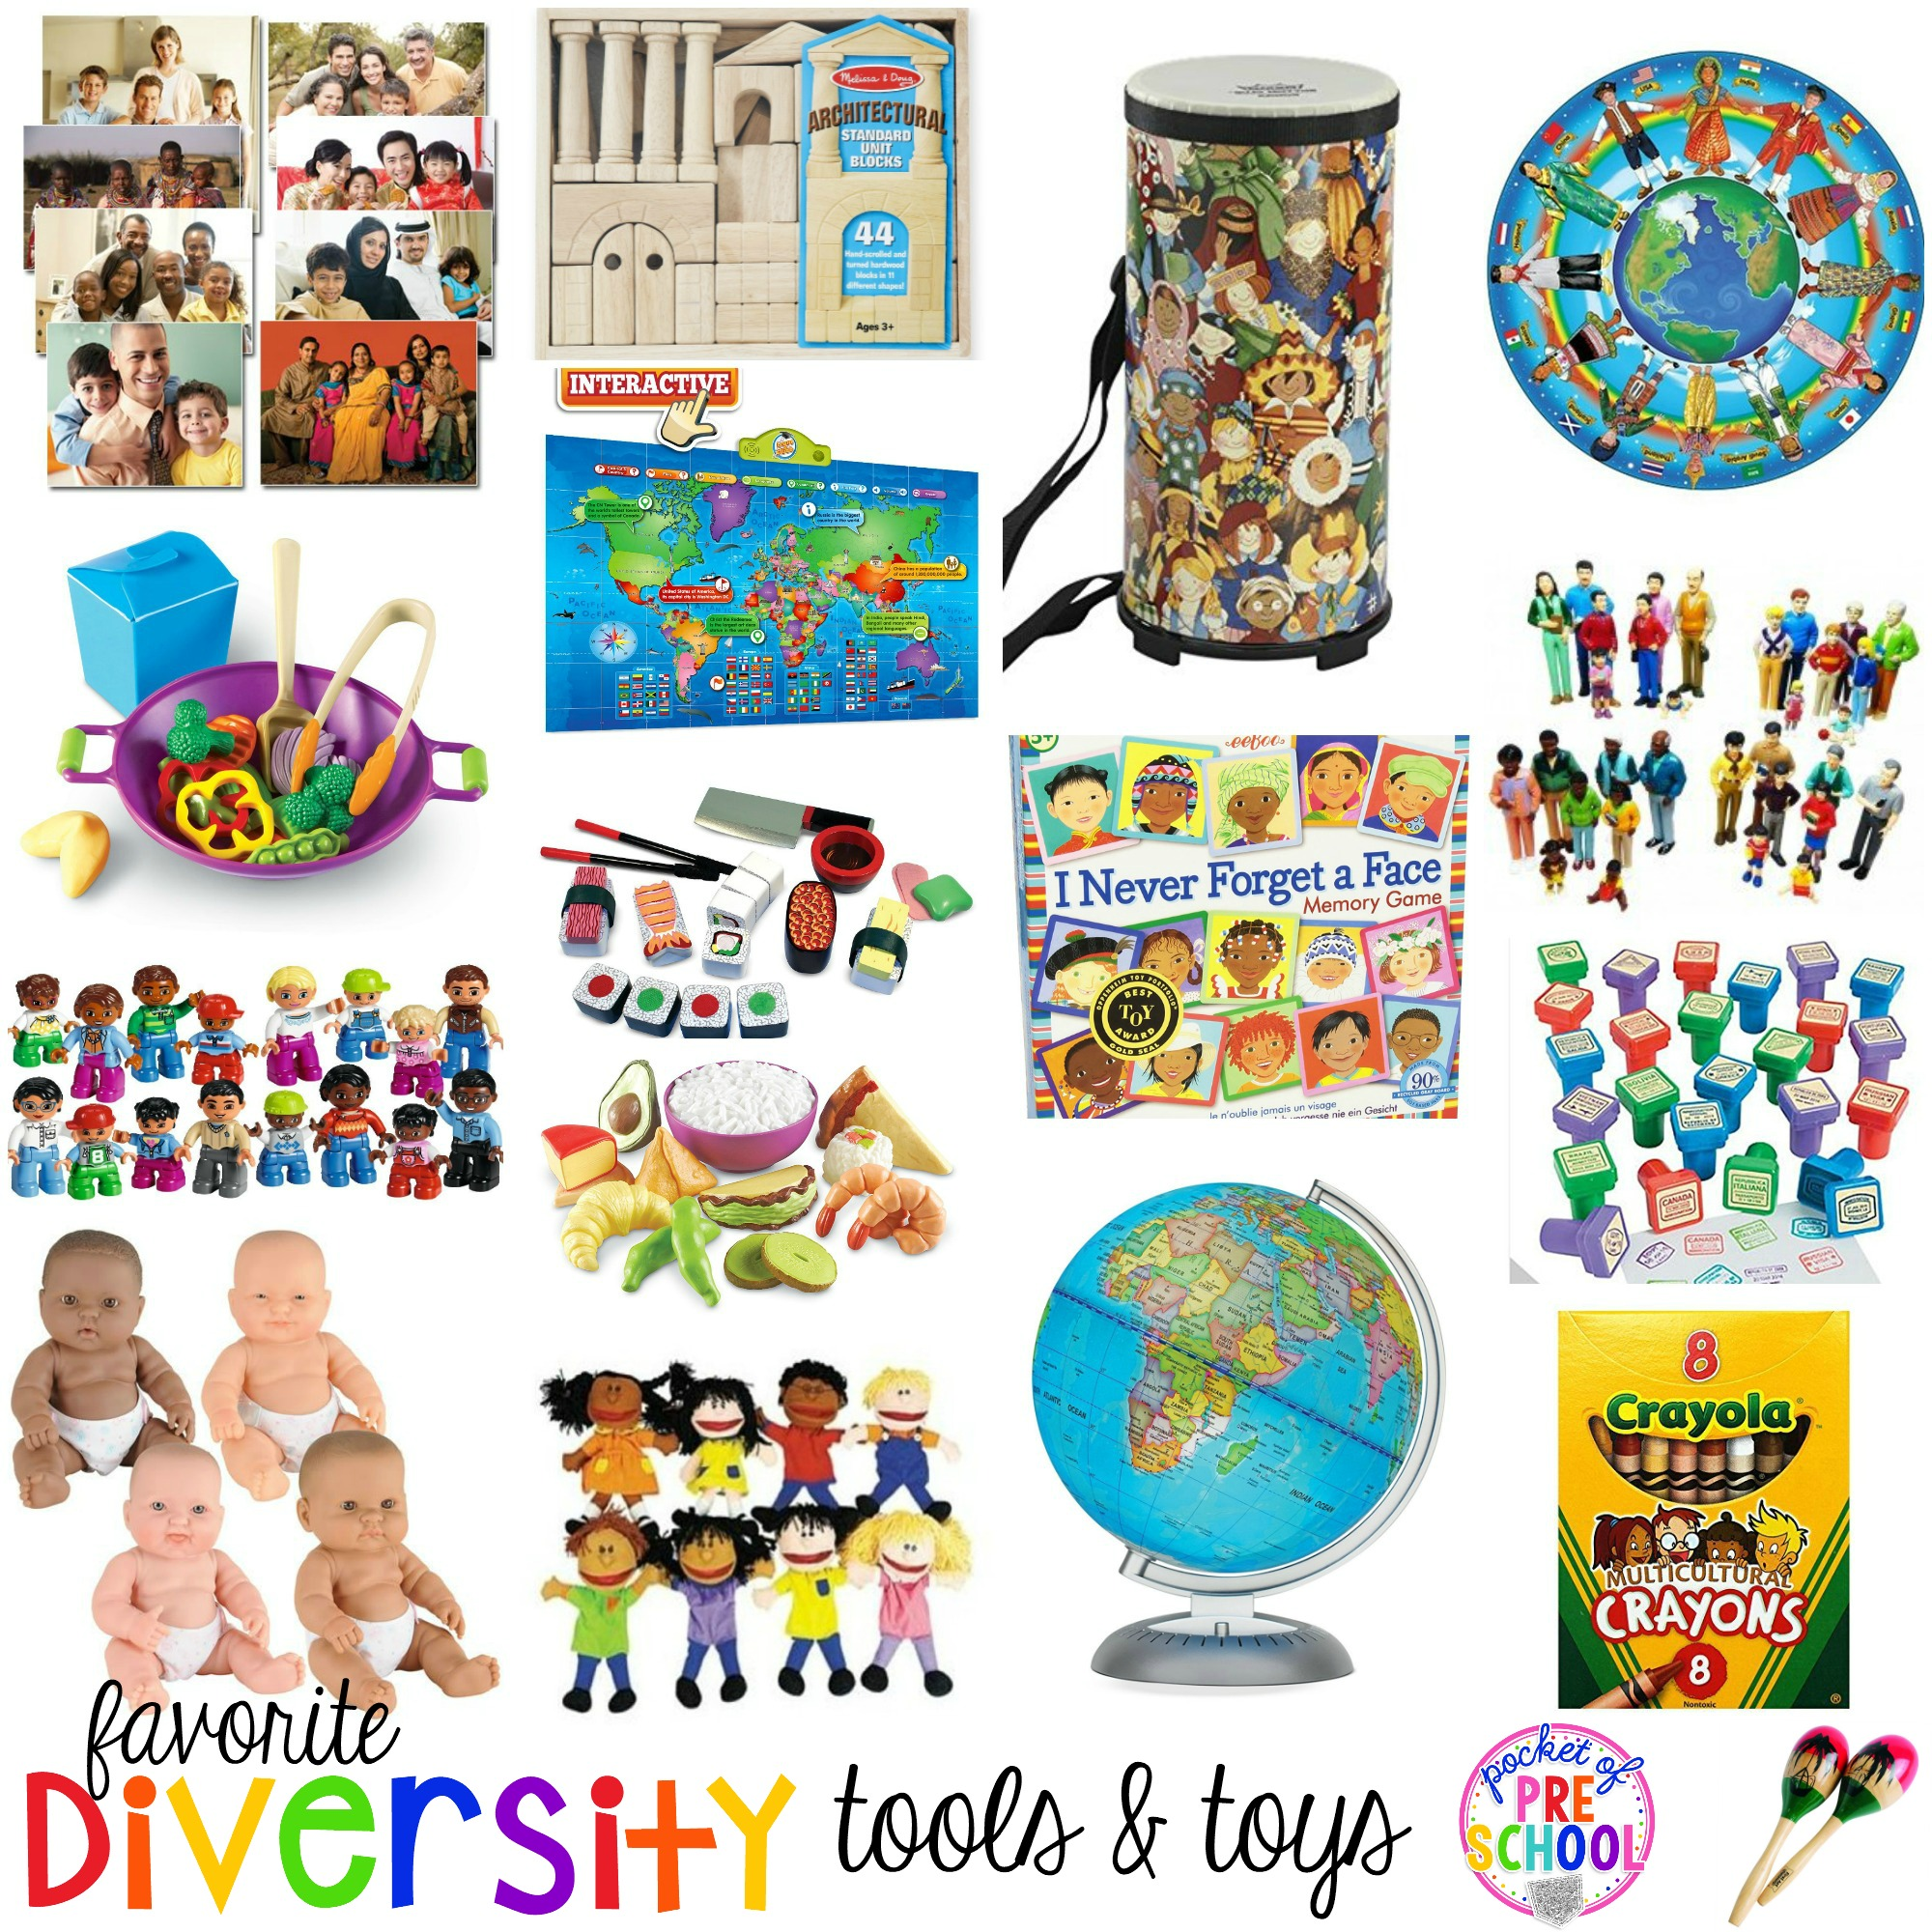 Diverse tools and toys for preschool, pre-k, and kindergarten. Be intentional when you select the items in your classroom. Celebrate the differences in each other because that's what makes every person amazing and unique!